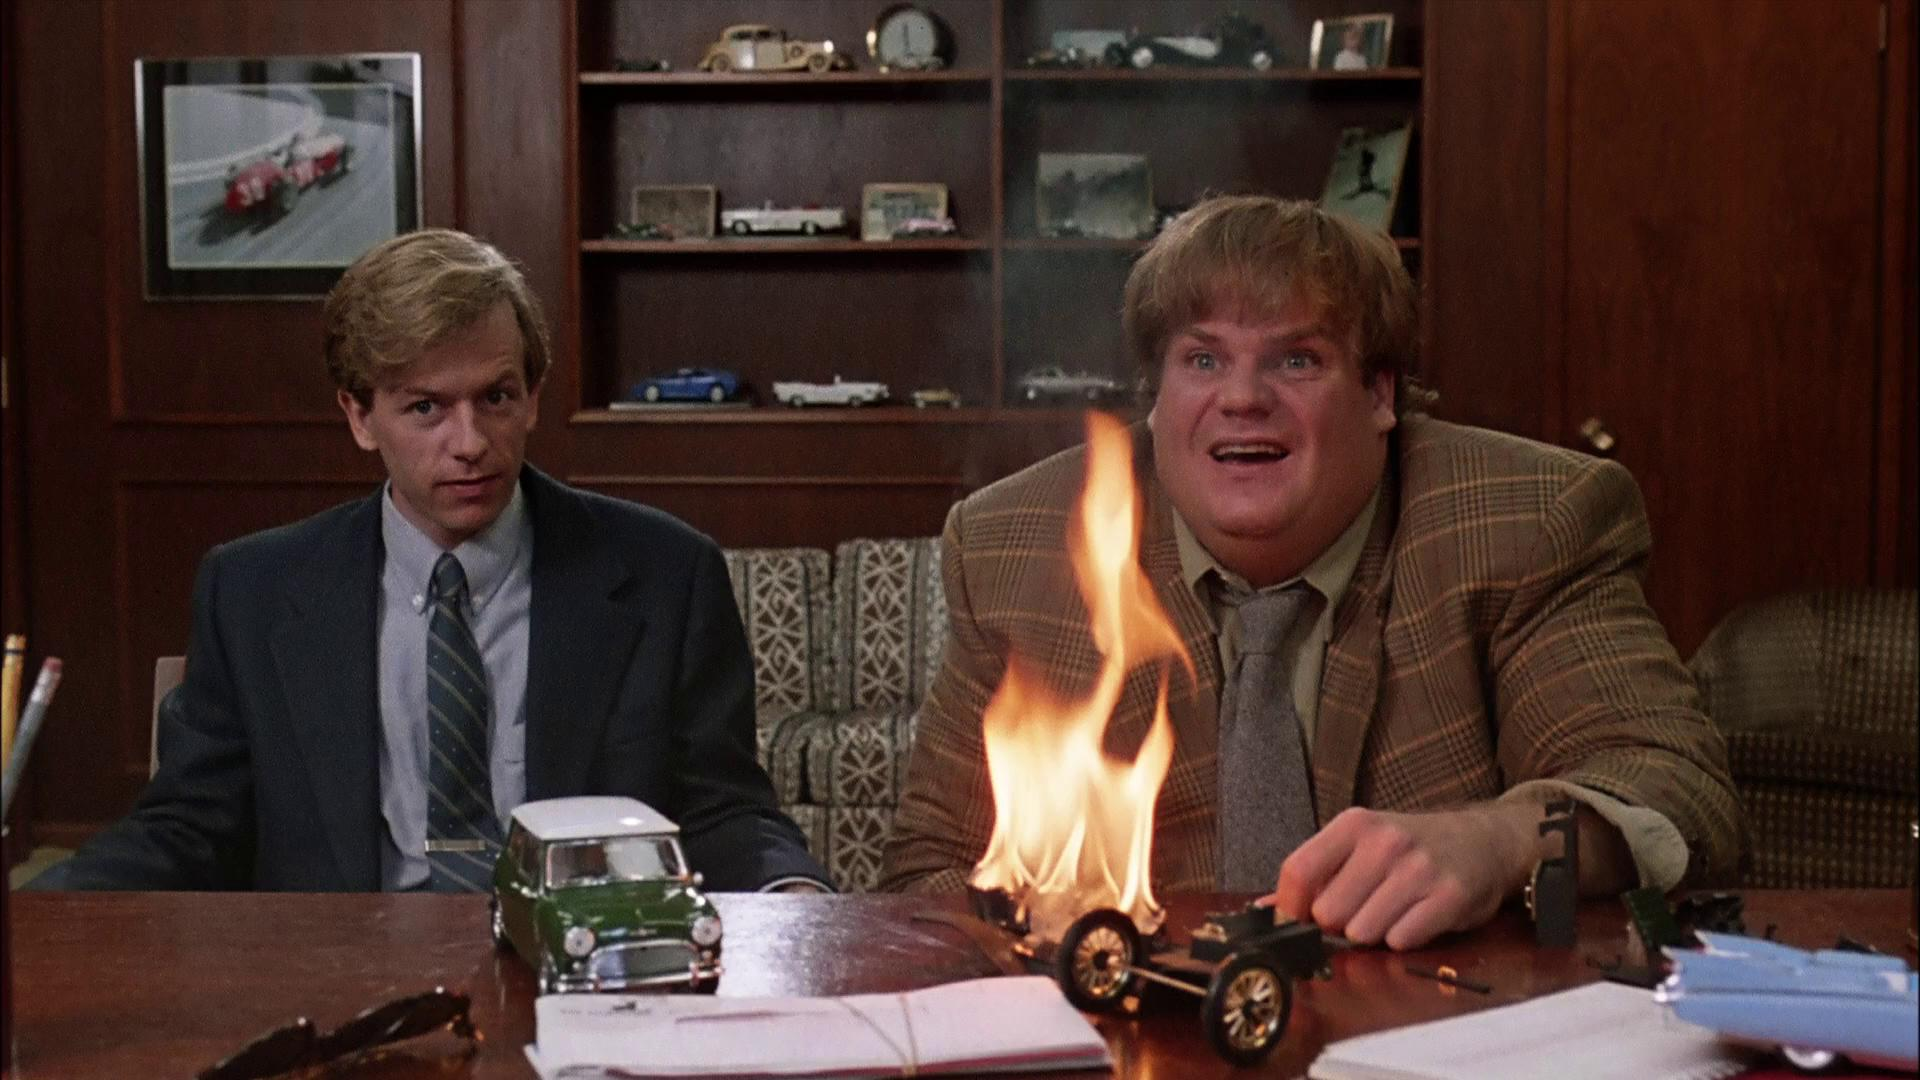 """Chris Farley and David Spade display """"low quality"""" traits during a job search in the movie """"Black Sheep"""""""